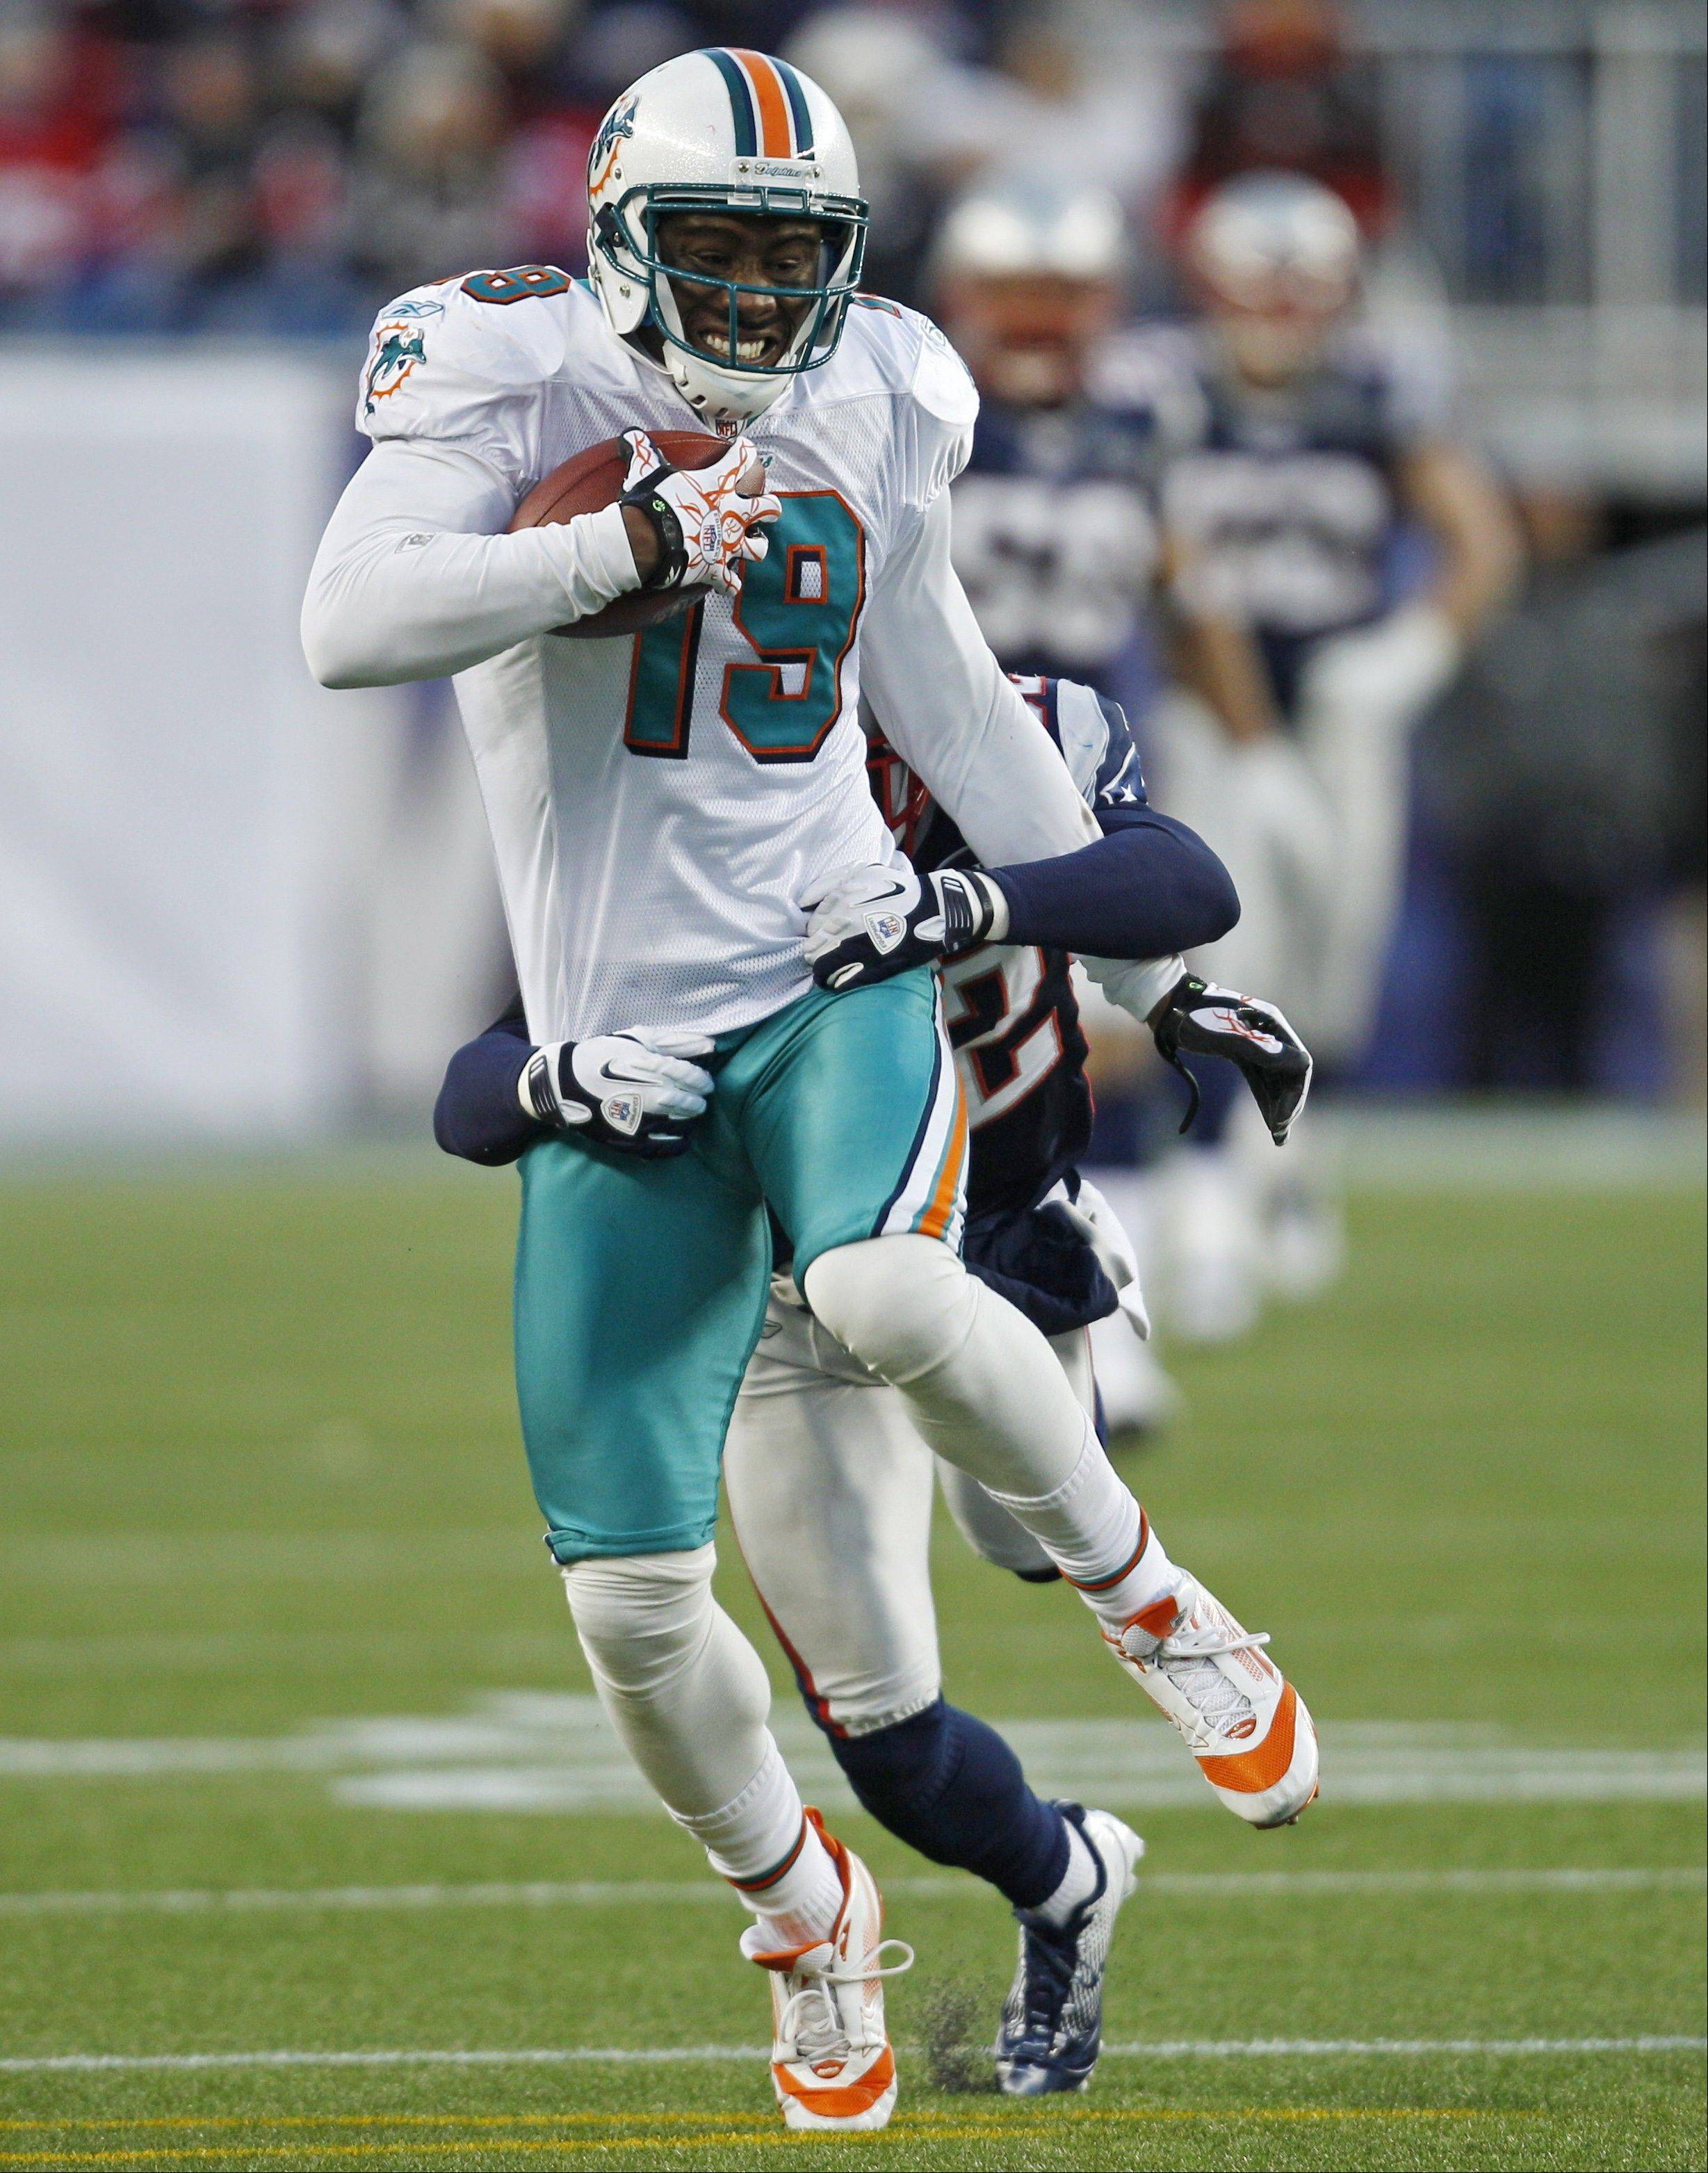 Miami Dolphins wide receiver Brandon Marshall (19) against the New England Patriots in the second half of an NFL football game in Foxborough, Mass., Saturday Dec. 24, 2011.